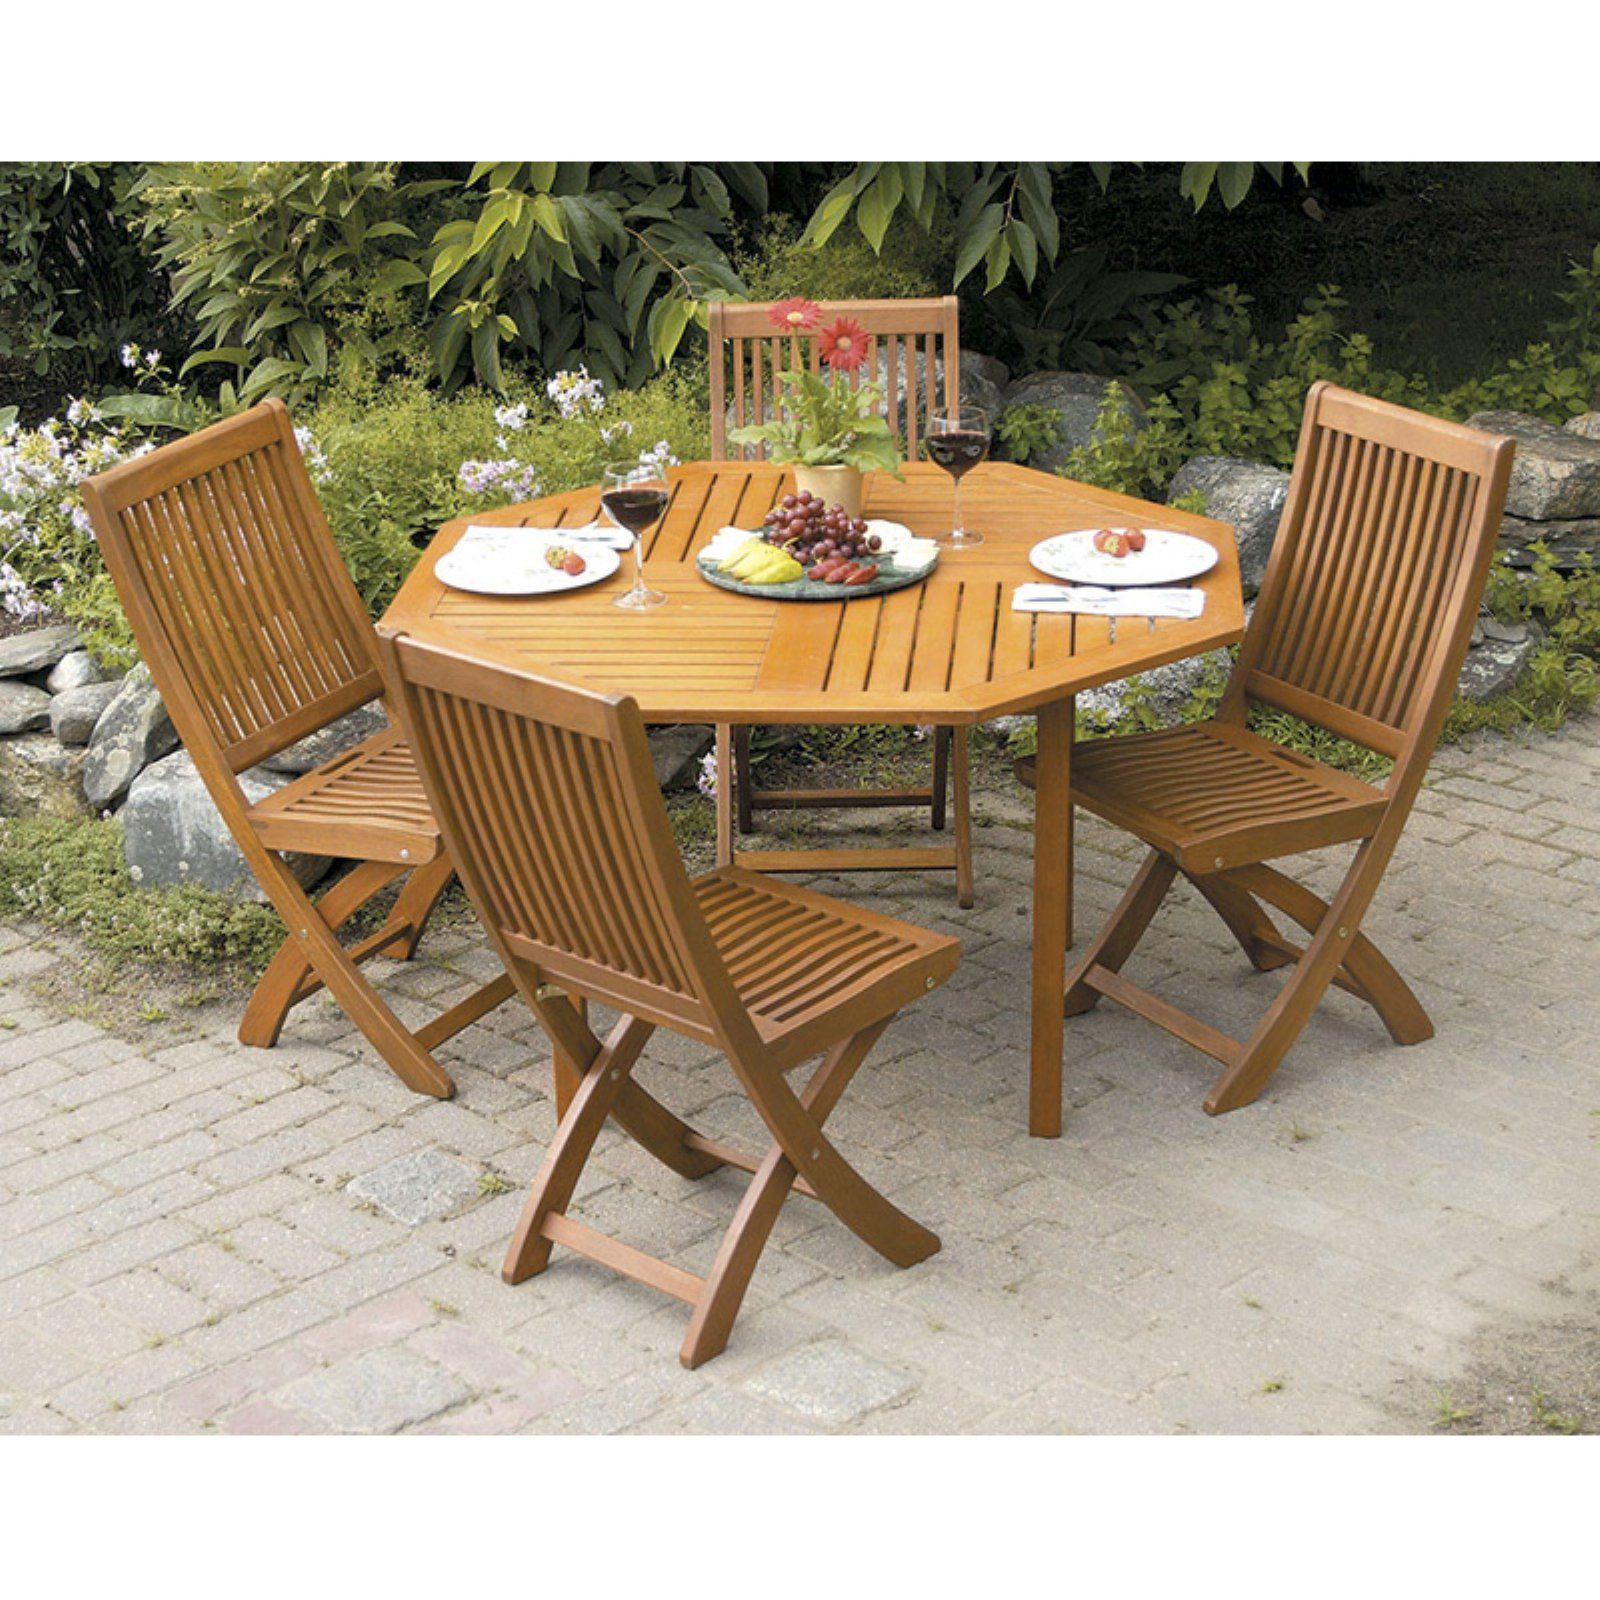 Outdoor Achla Eucalyptus Wood 5 Piece Octagonal Patio Dining Set